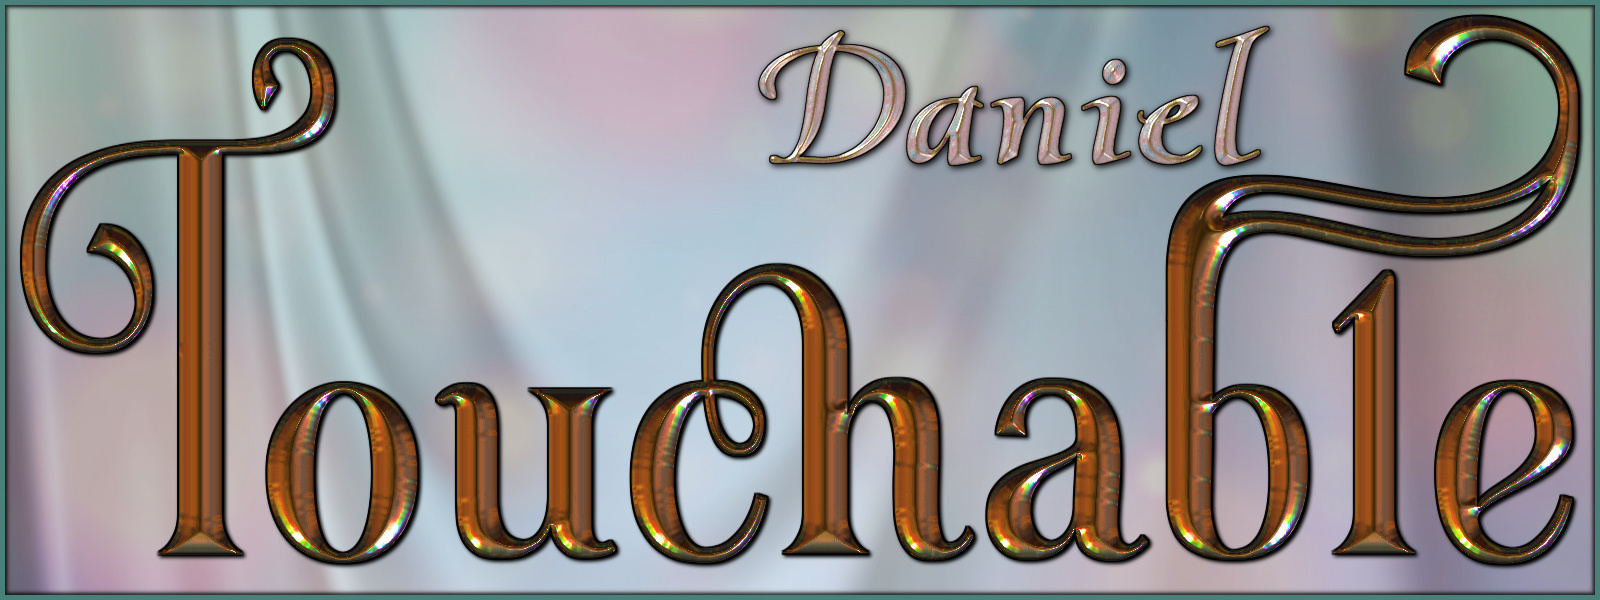 Touchable Daniel by -Wolfie-